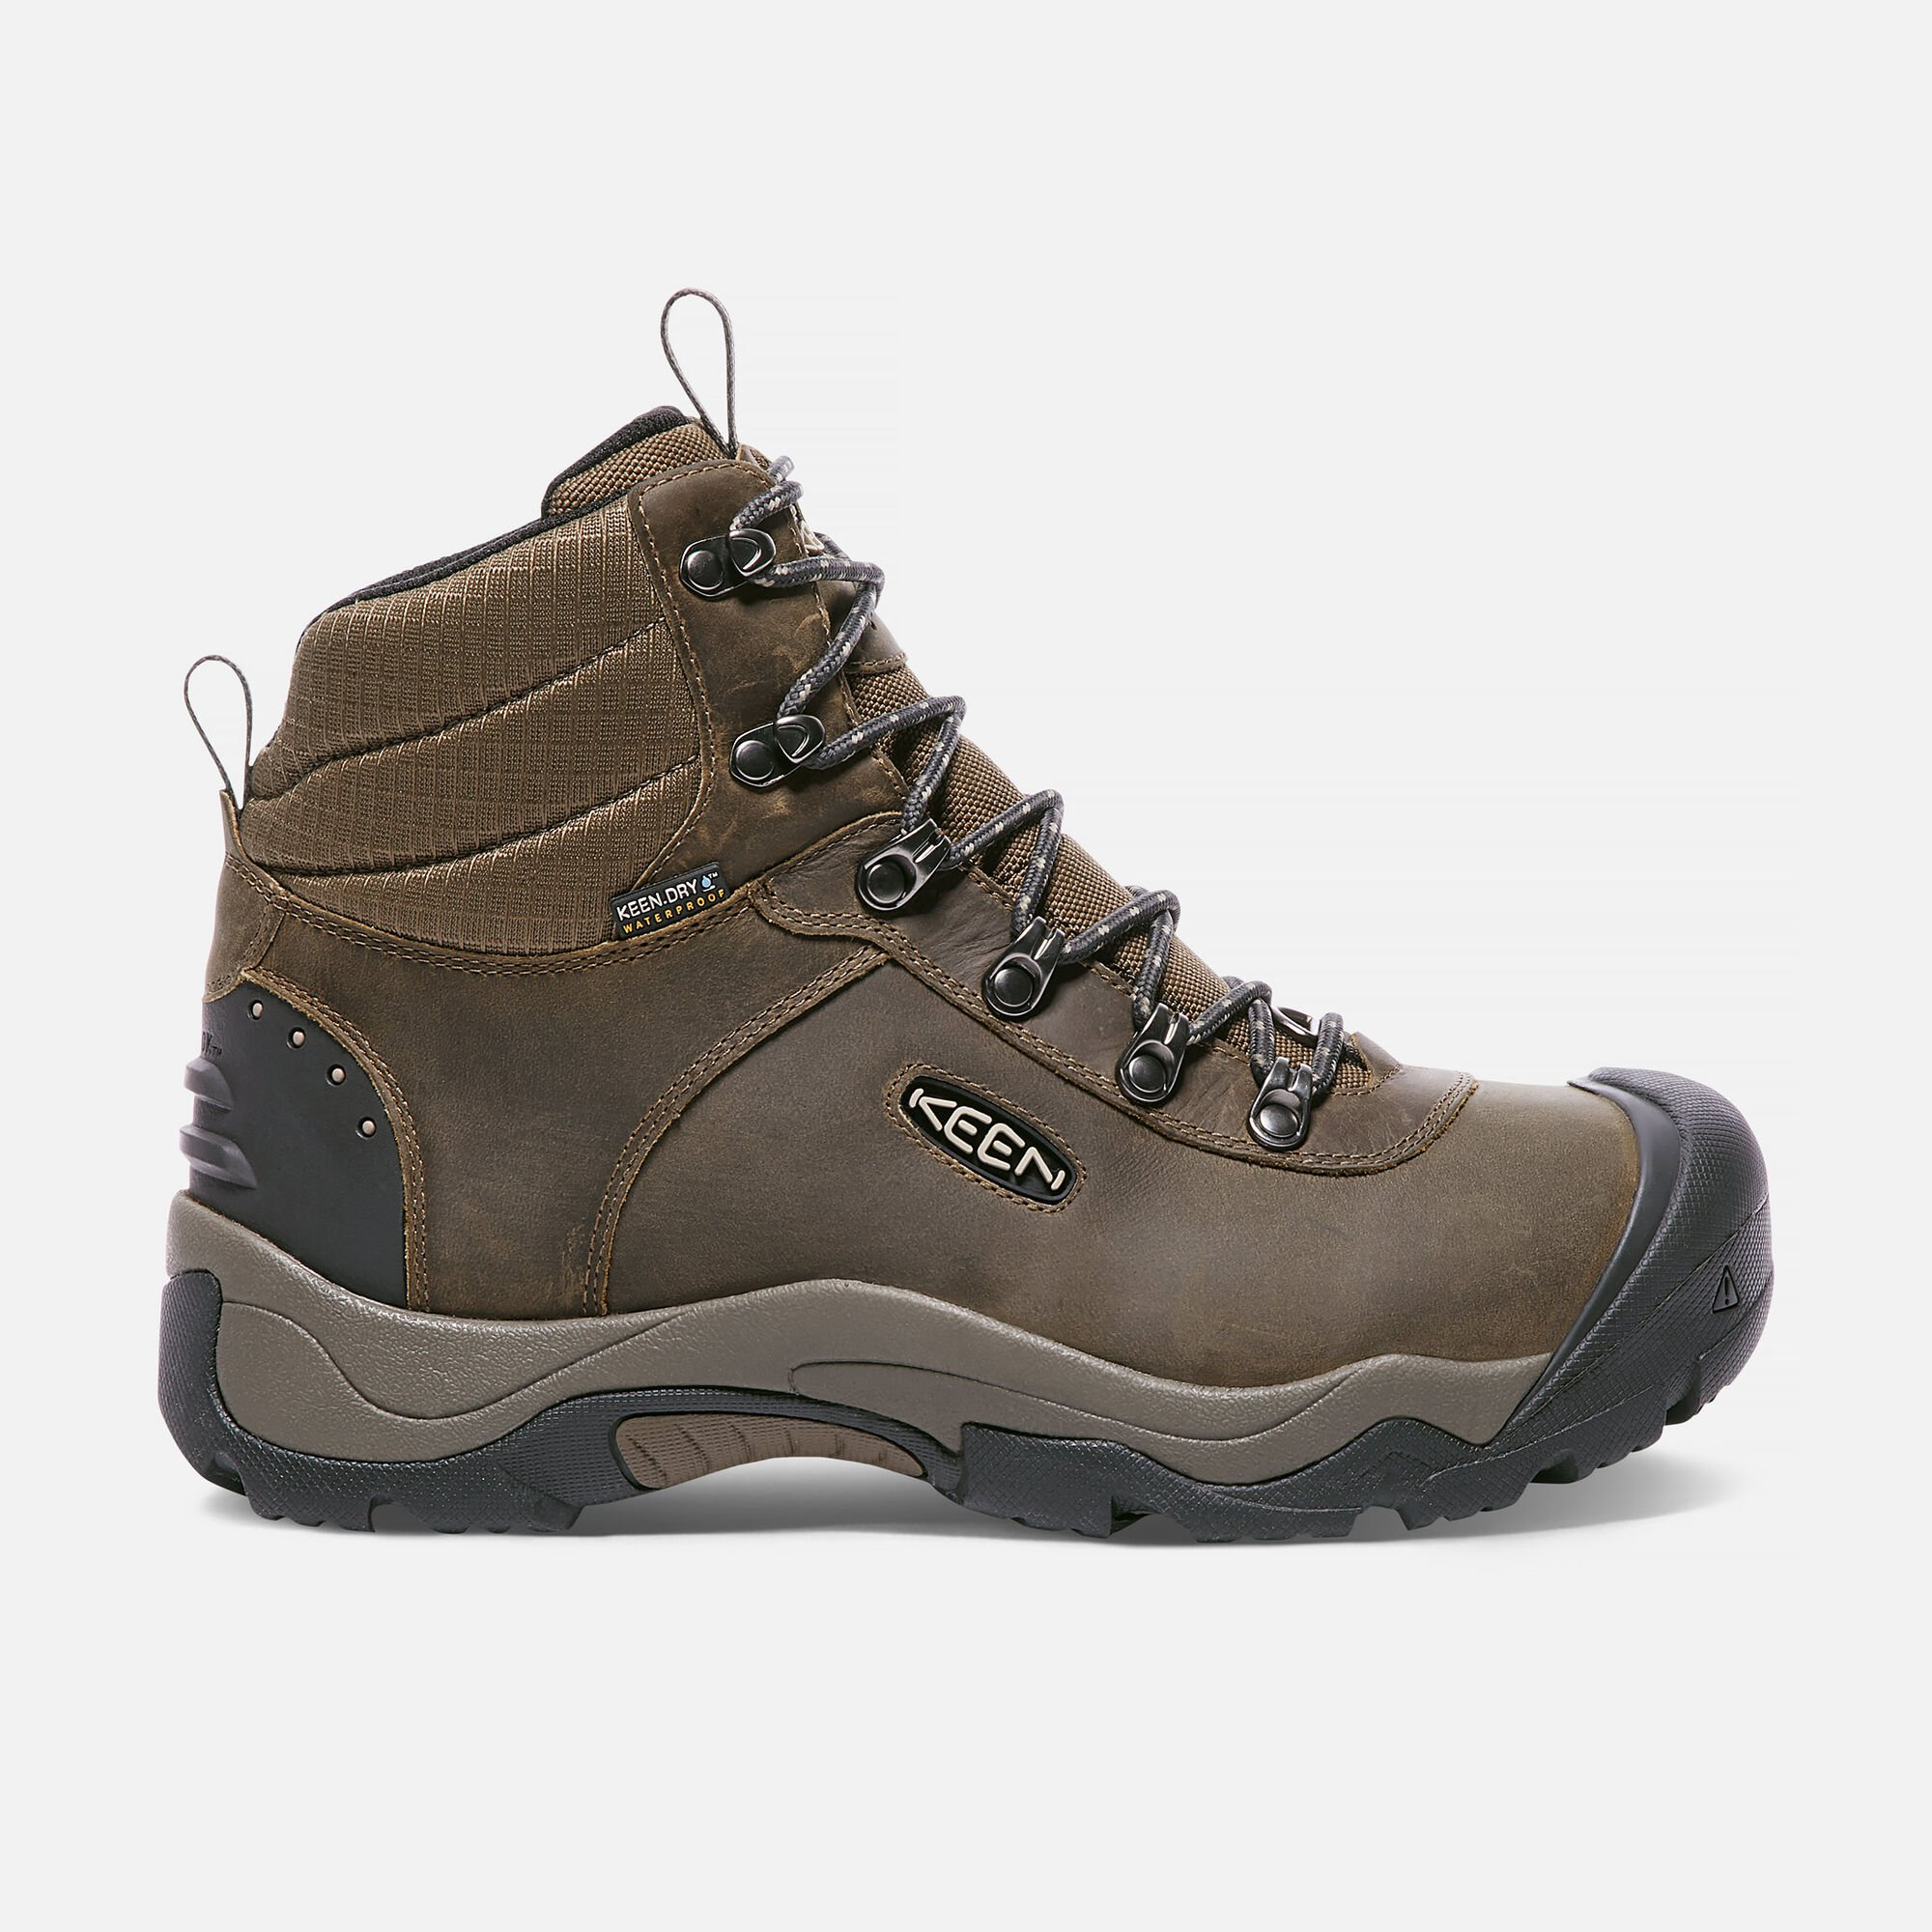 mountain gre boot warehouse womens boots comfortable footwear storm gb hiking wms most comforter waterproof walking